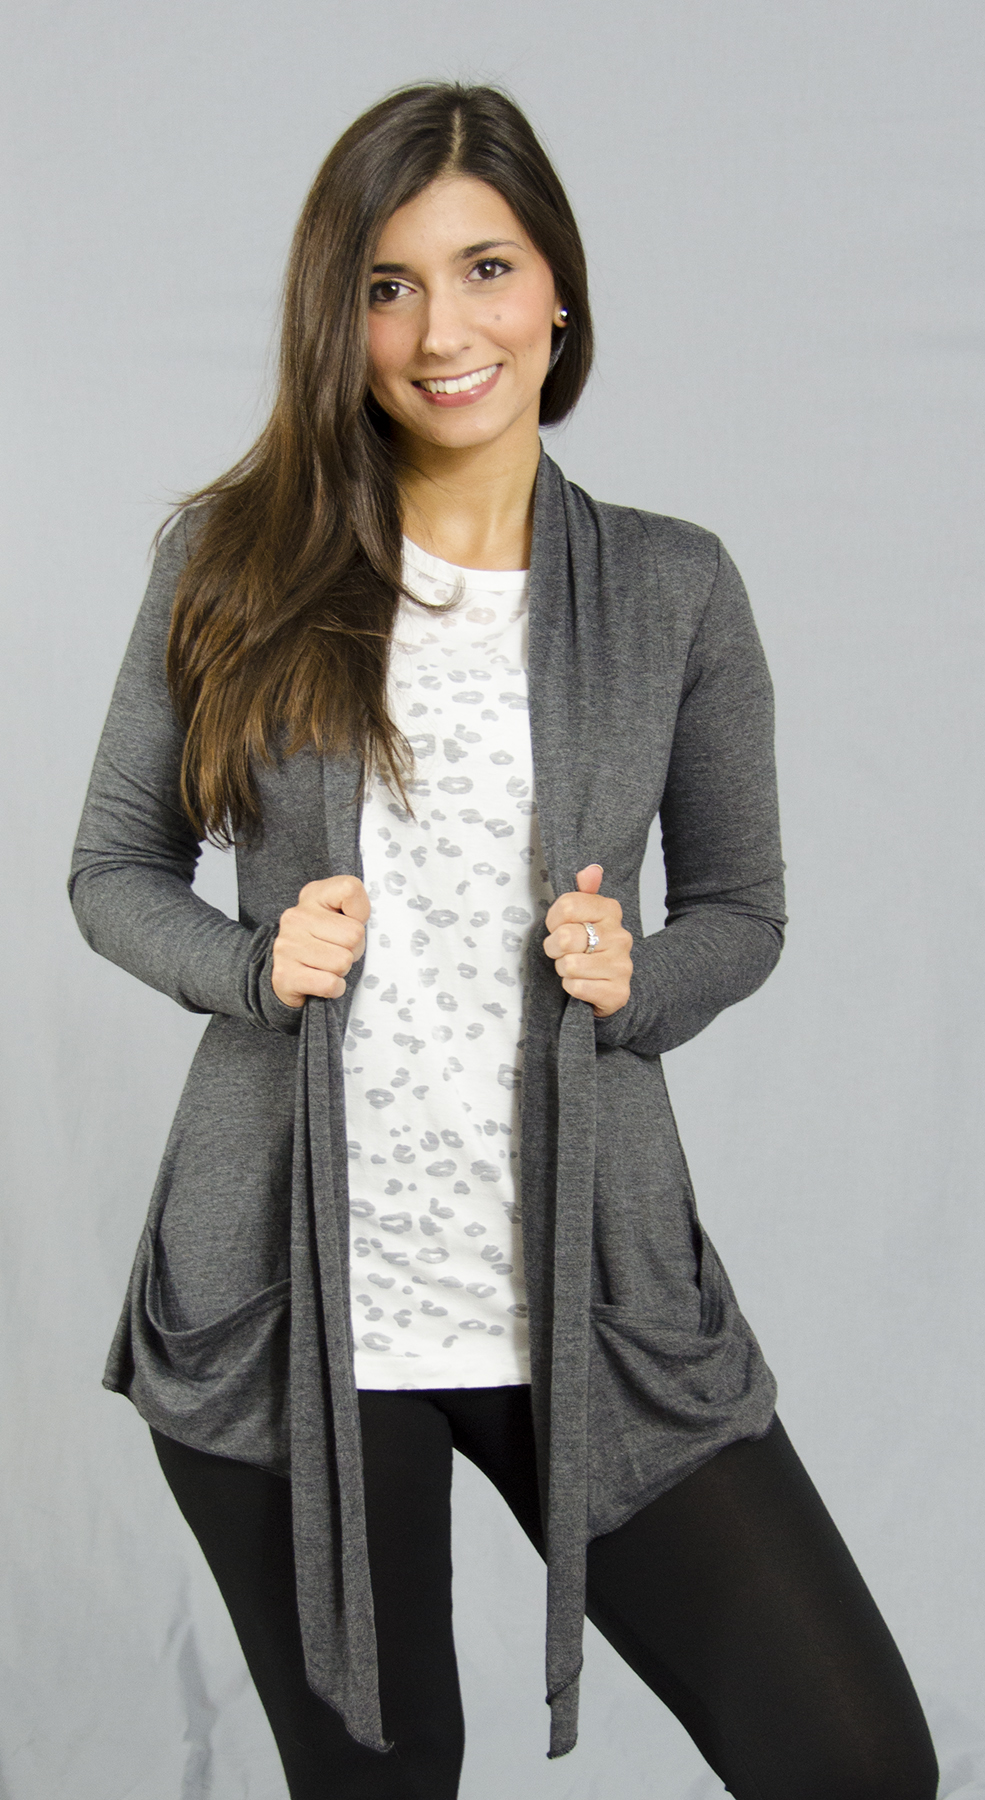 Monag 383102 - L/S Open Jacket with Pockets